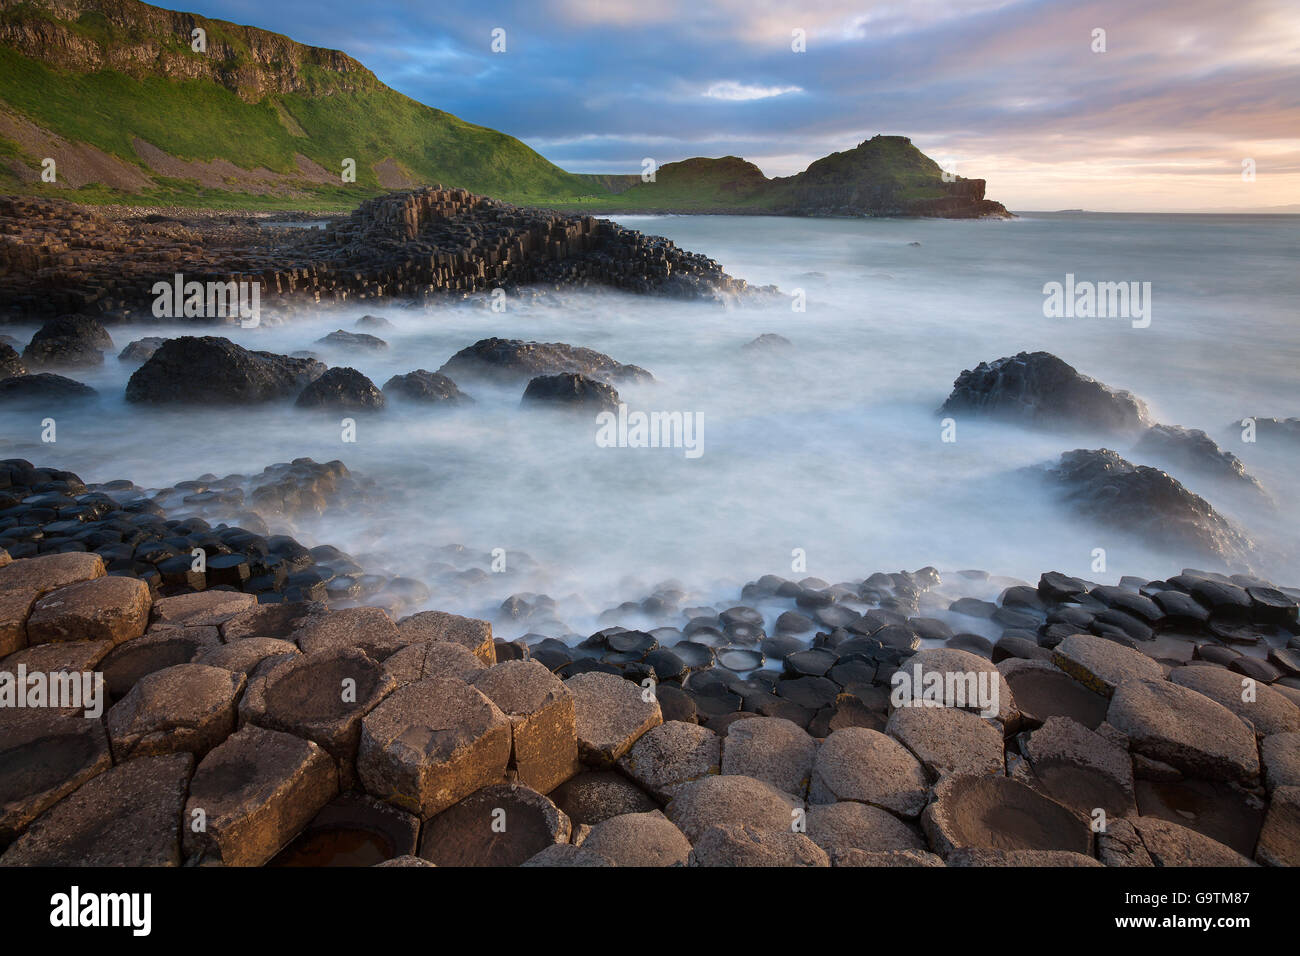 The Giants Causeway in County Antrim in Northern Ireland. A UNESCO World Heritage Site. - Stock Image